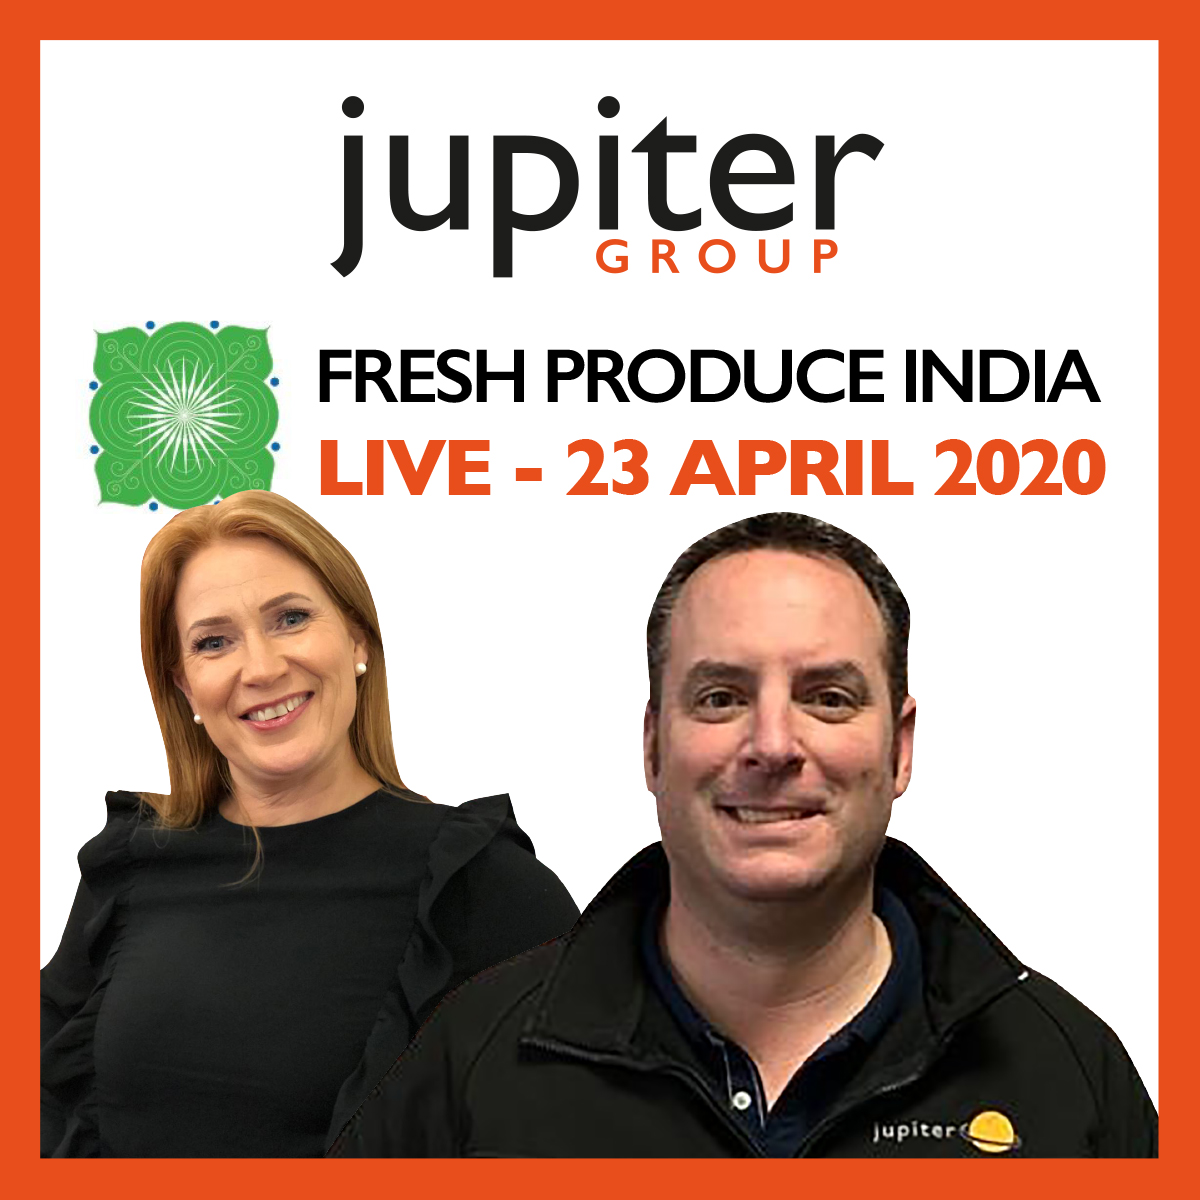 Jupiter Group CEO Mark and his wife, Joint MD Yvonne will be keynote speakers at Fresh Produce India